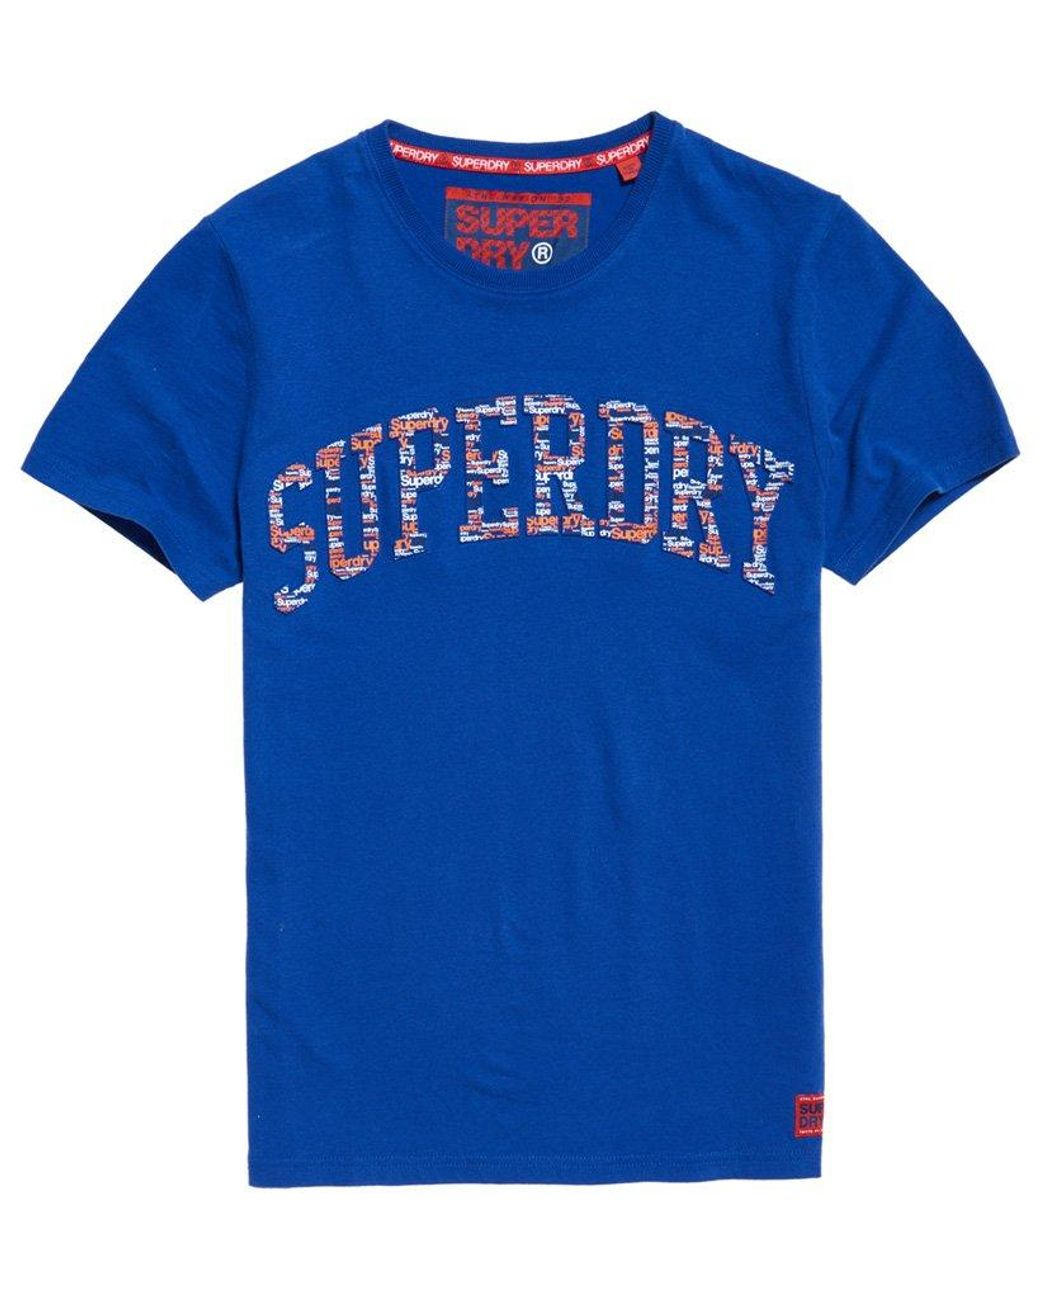 Superdry Men/'s Lay Up Blue Royal Blue Embossed Crew-Neck T-Shirt